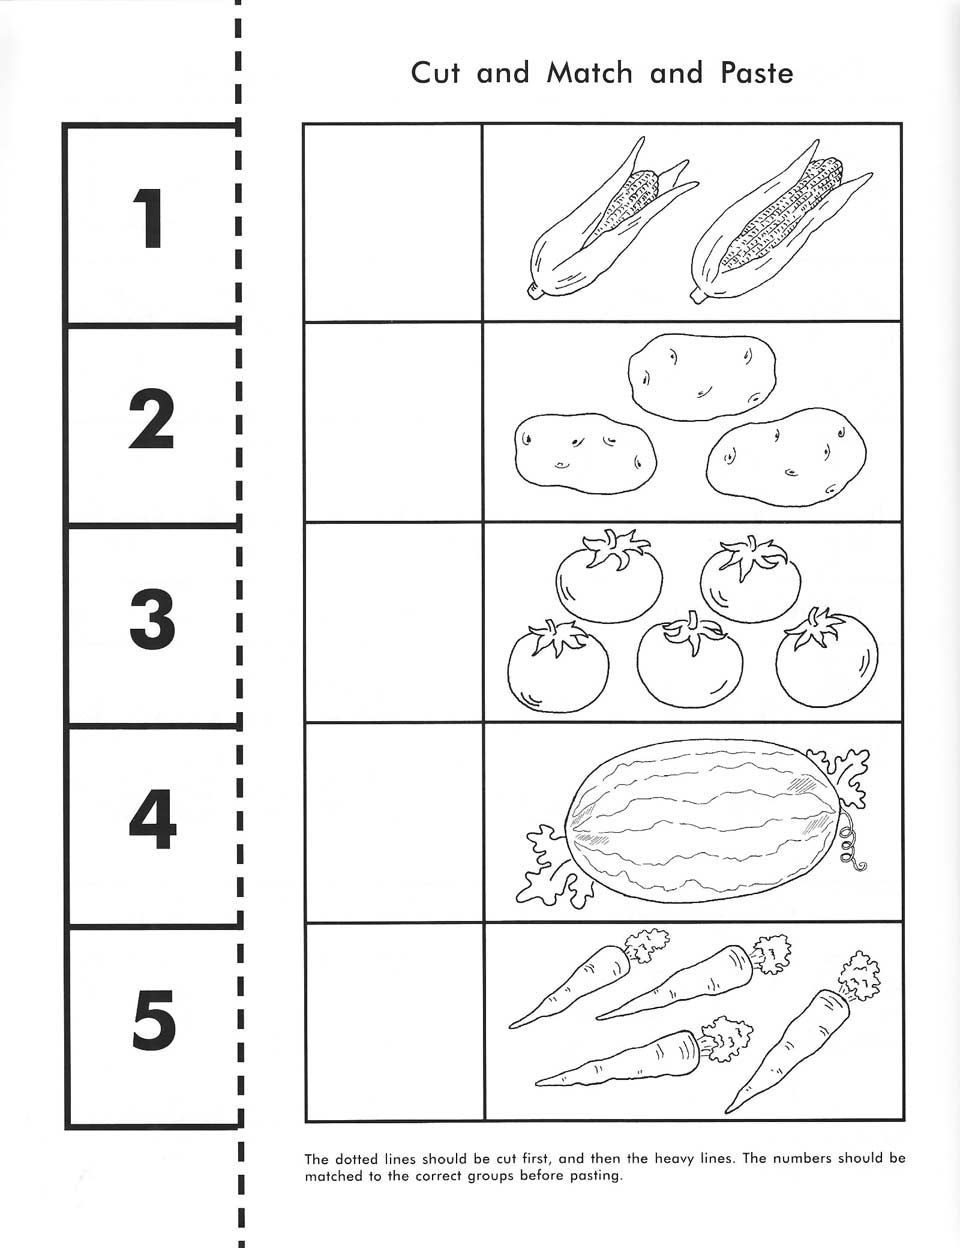 Cut, Count, Match And Paste / Free Printable | Pre-K Math | Printable Worksheets For Pre K Students